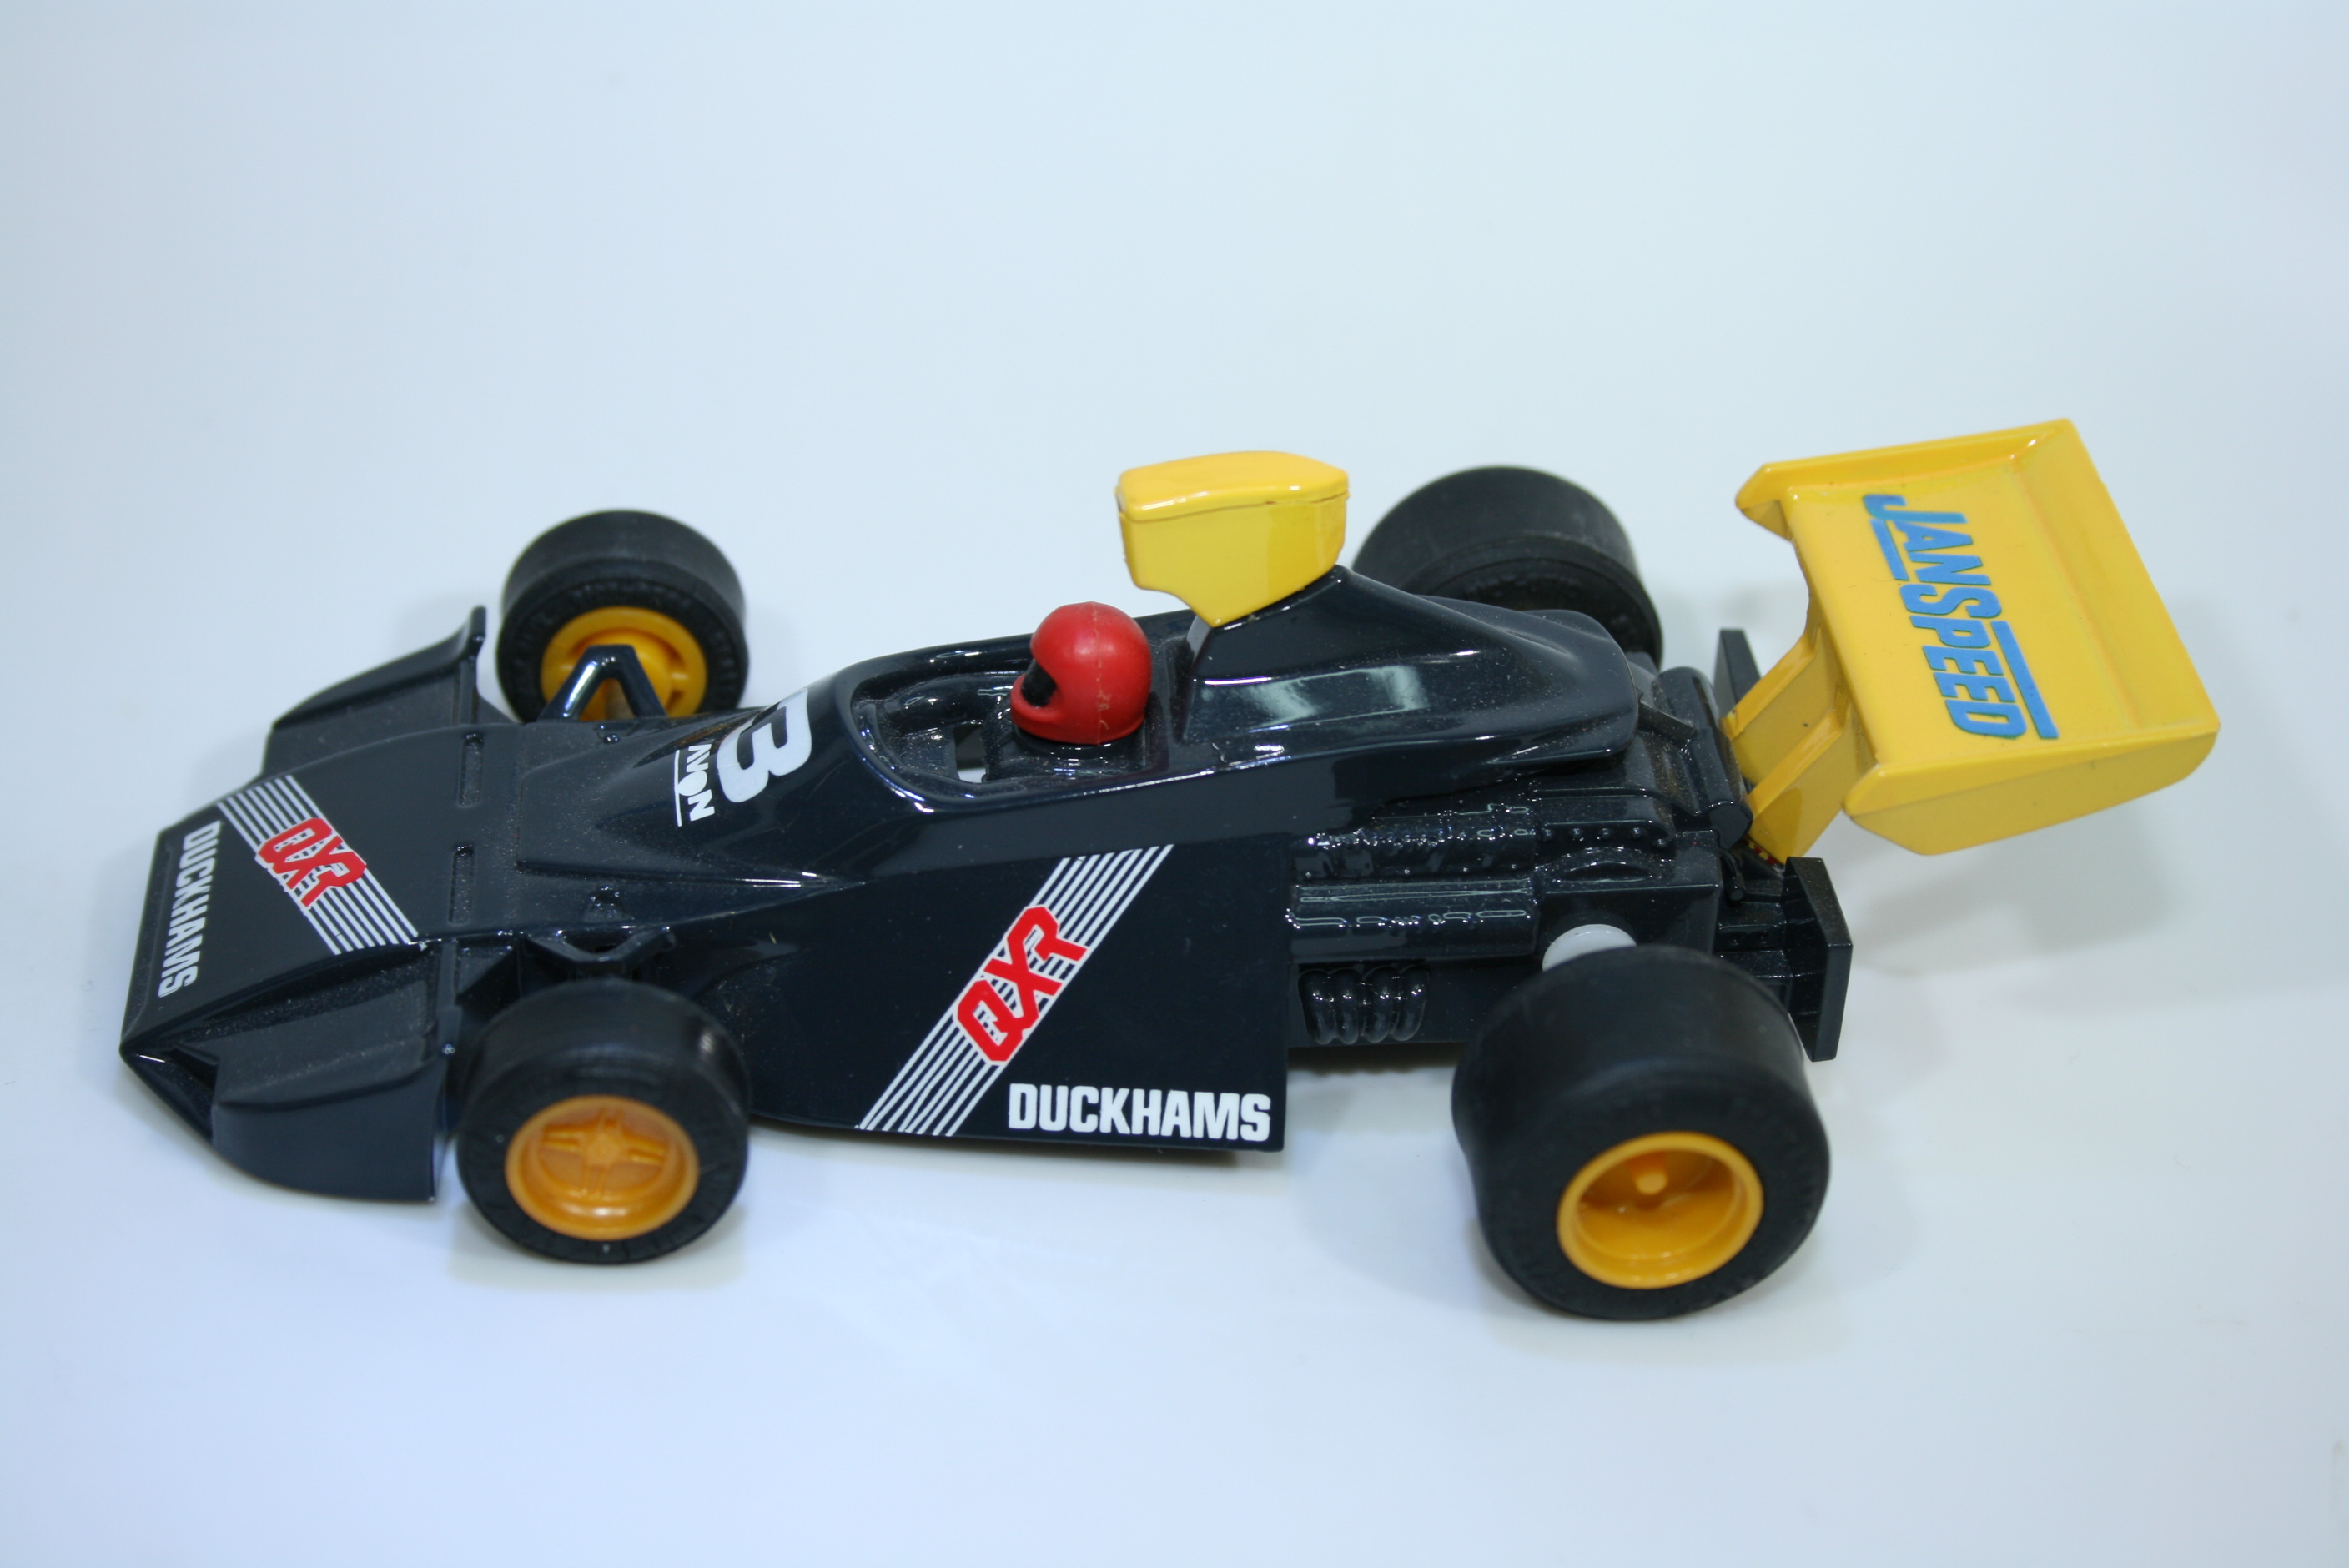 1216 Brabham BT44B 1975 C Reutemann Scalextric C2015 1997 Pre Production Factory Hand Painted